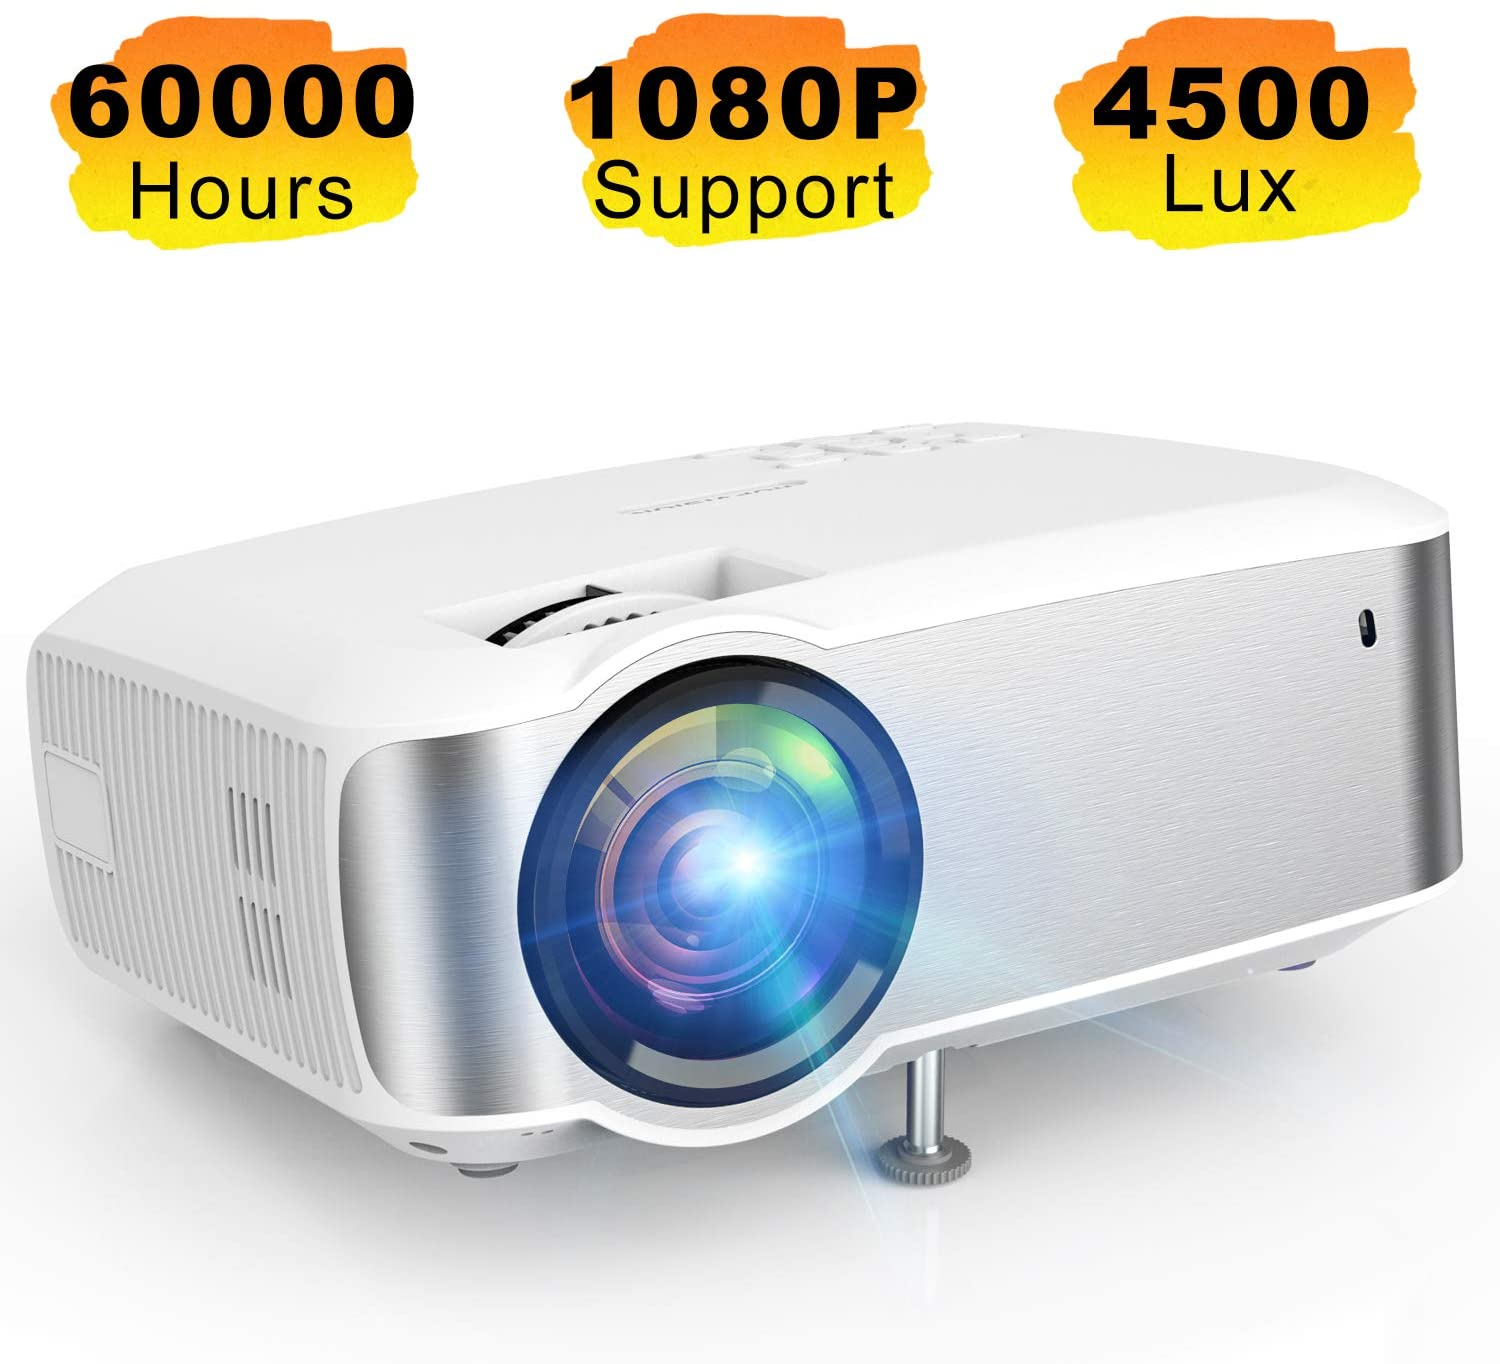 Projector Topvision 1080p Supported Video Projector With 4500l 60 000 Hrs For Ebay